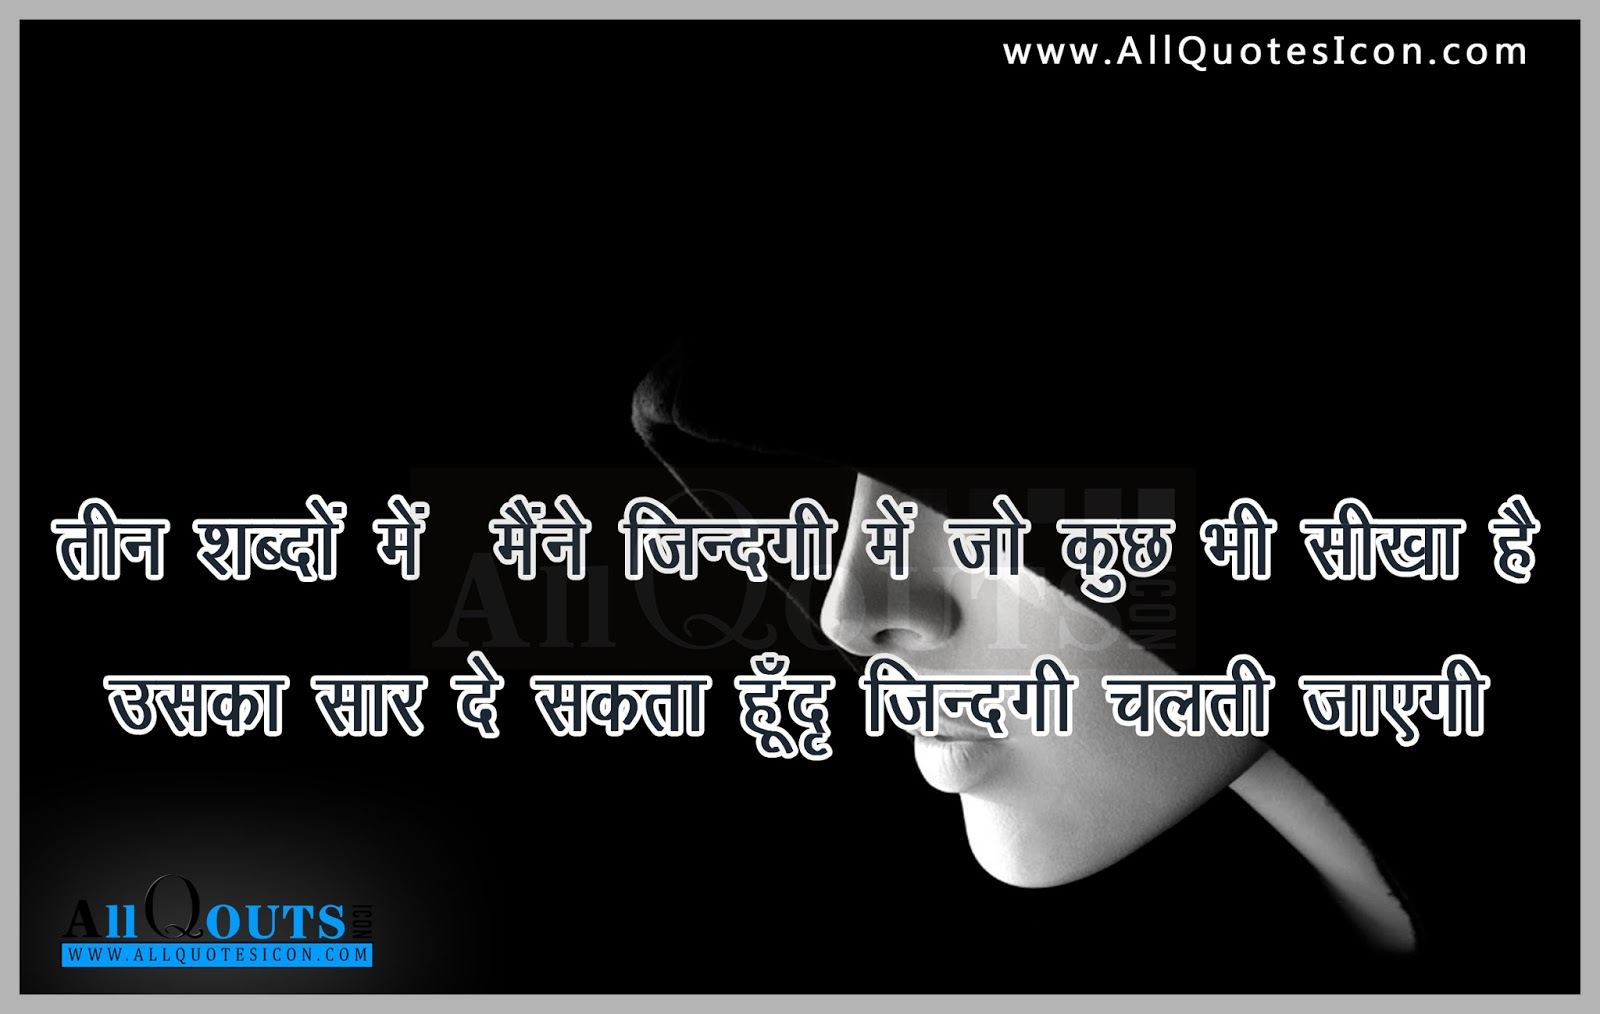 Best Life Quotes and Thoughts in Hindi | www.AllQuotesIcon.com | Telugu Quotes | Tamil Quotes ...